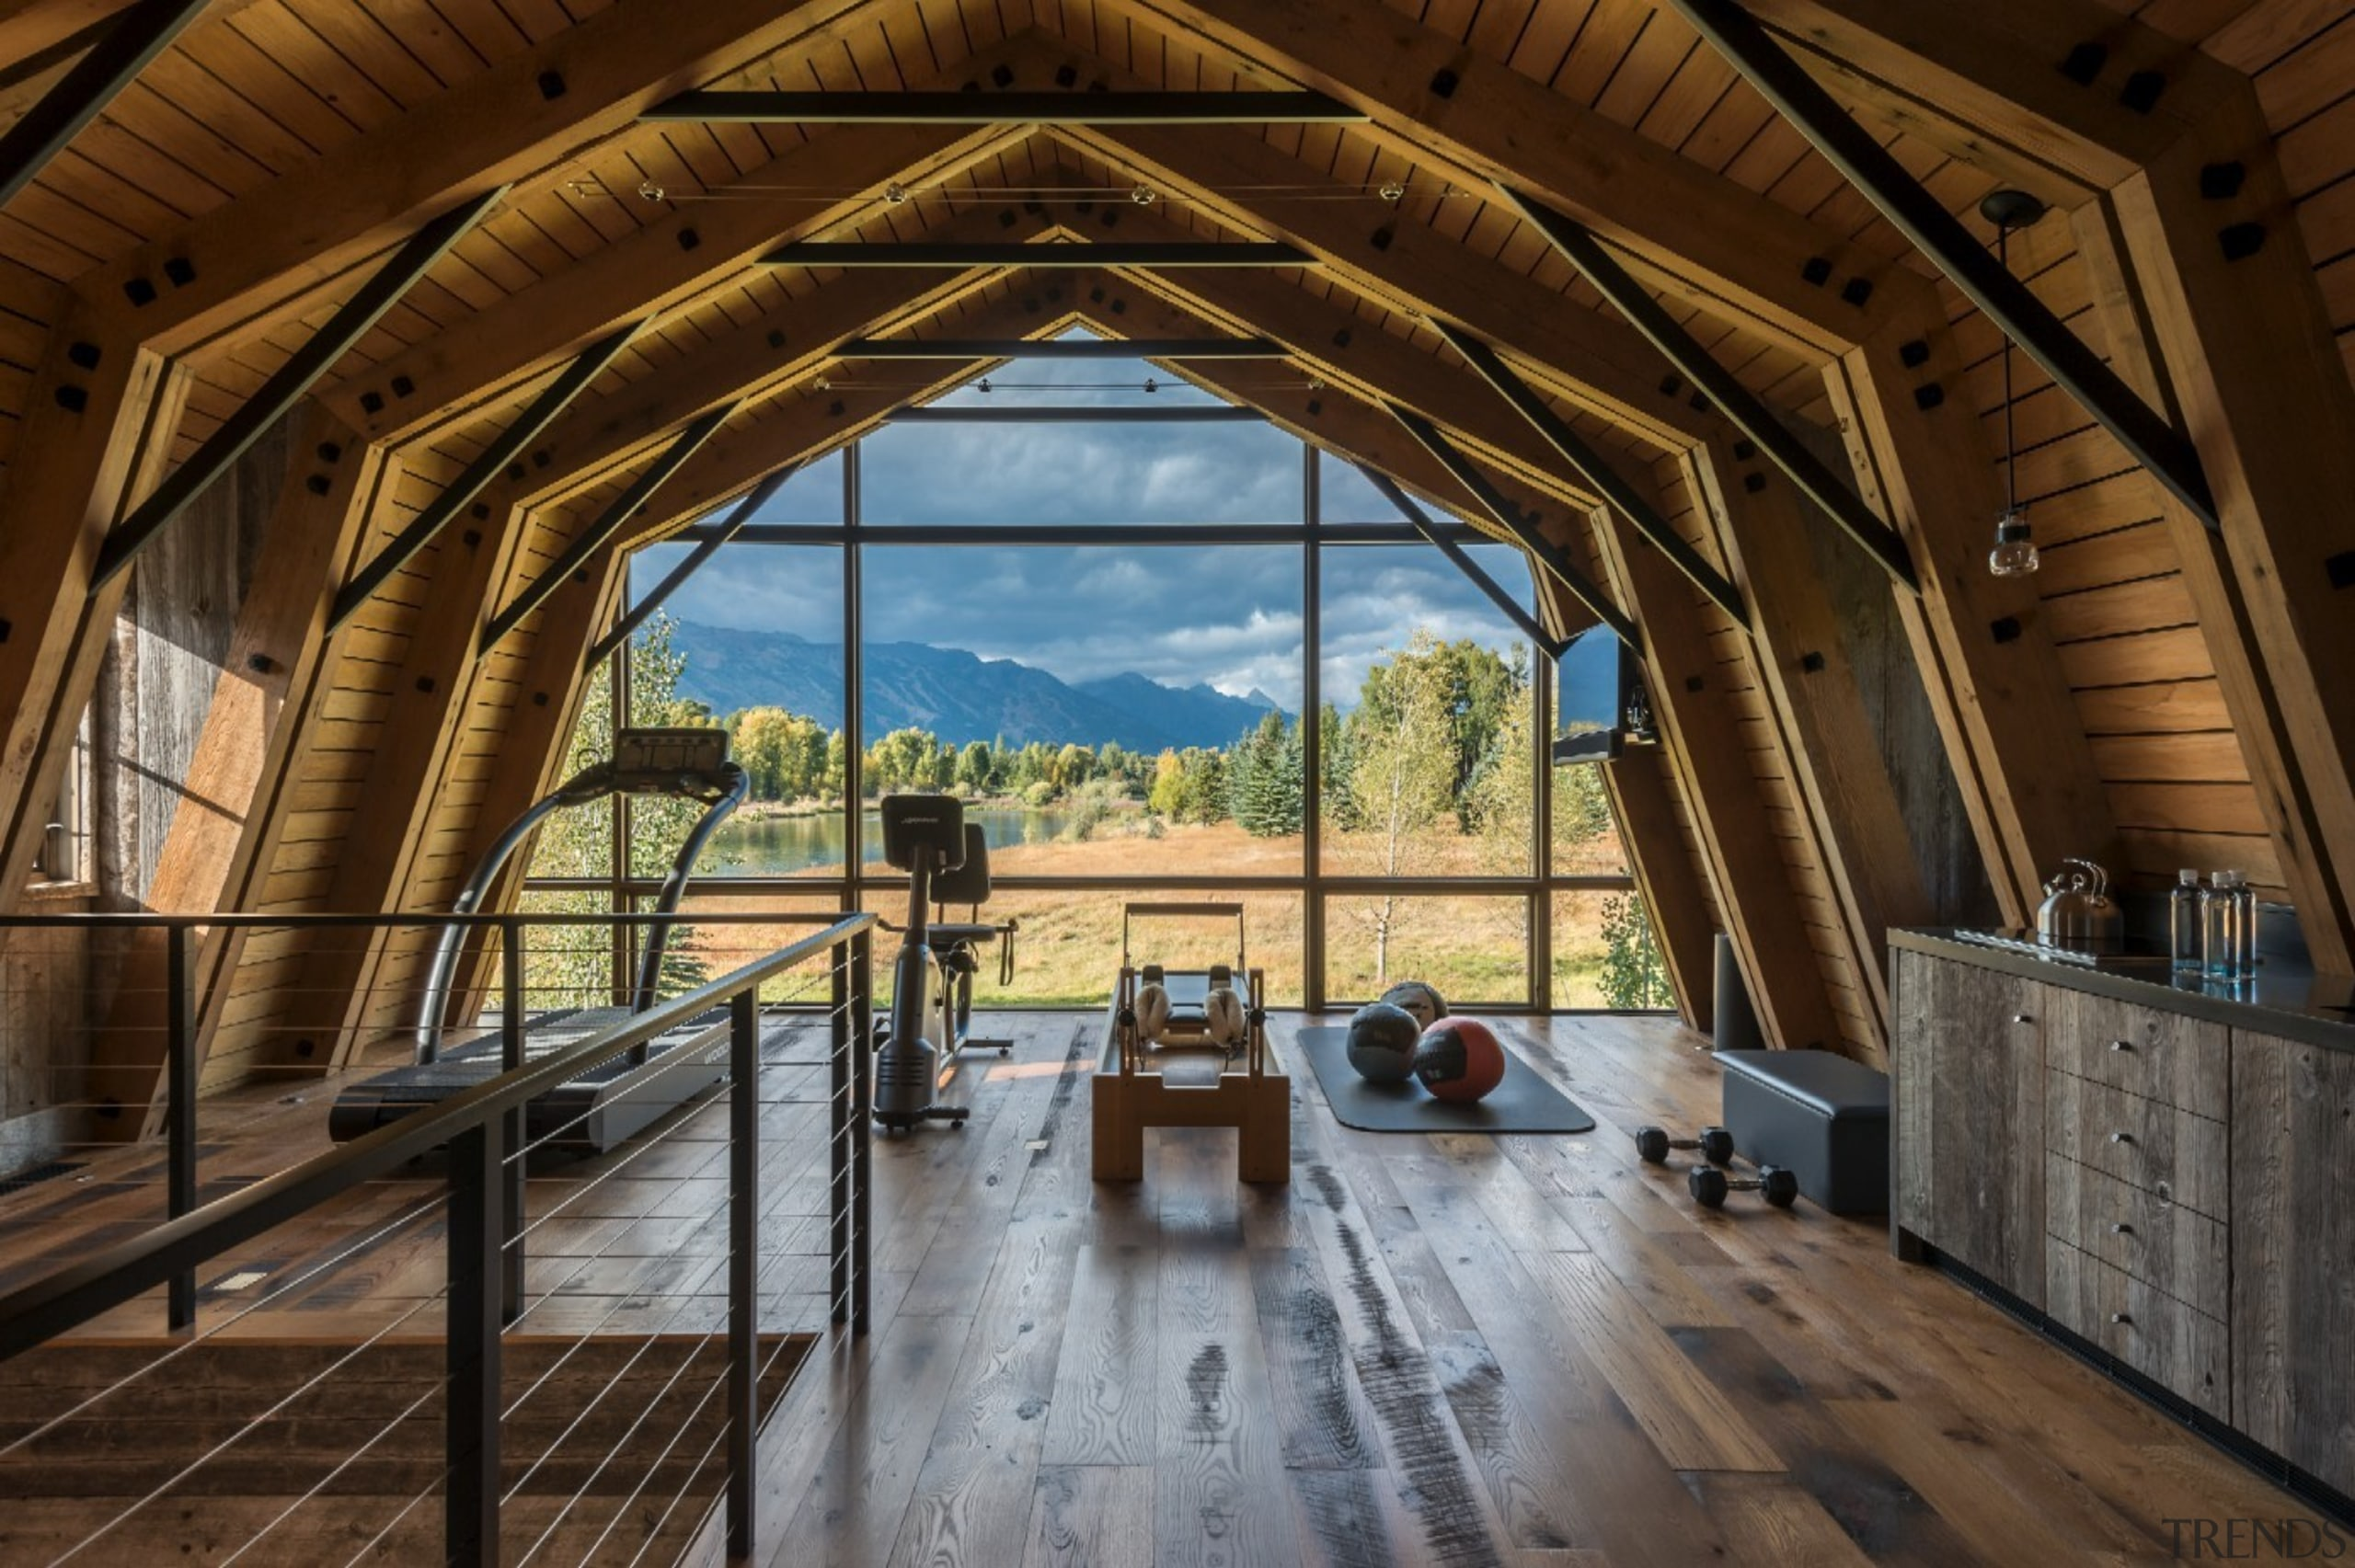 The gym on this level has a spectacular estate, home, real estate, wood, brown